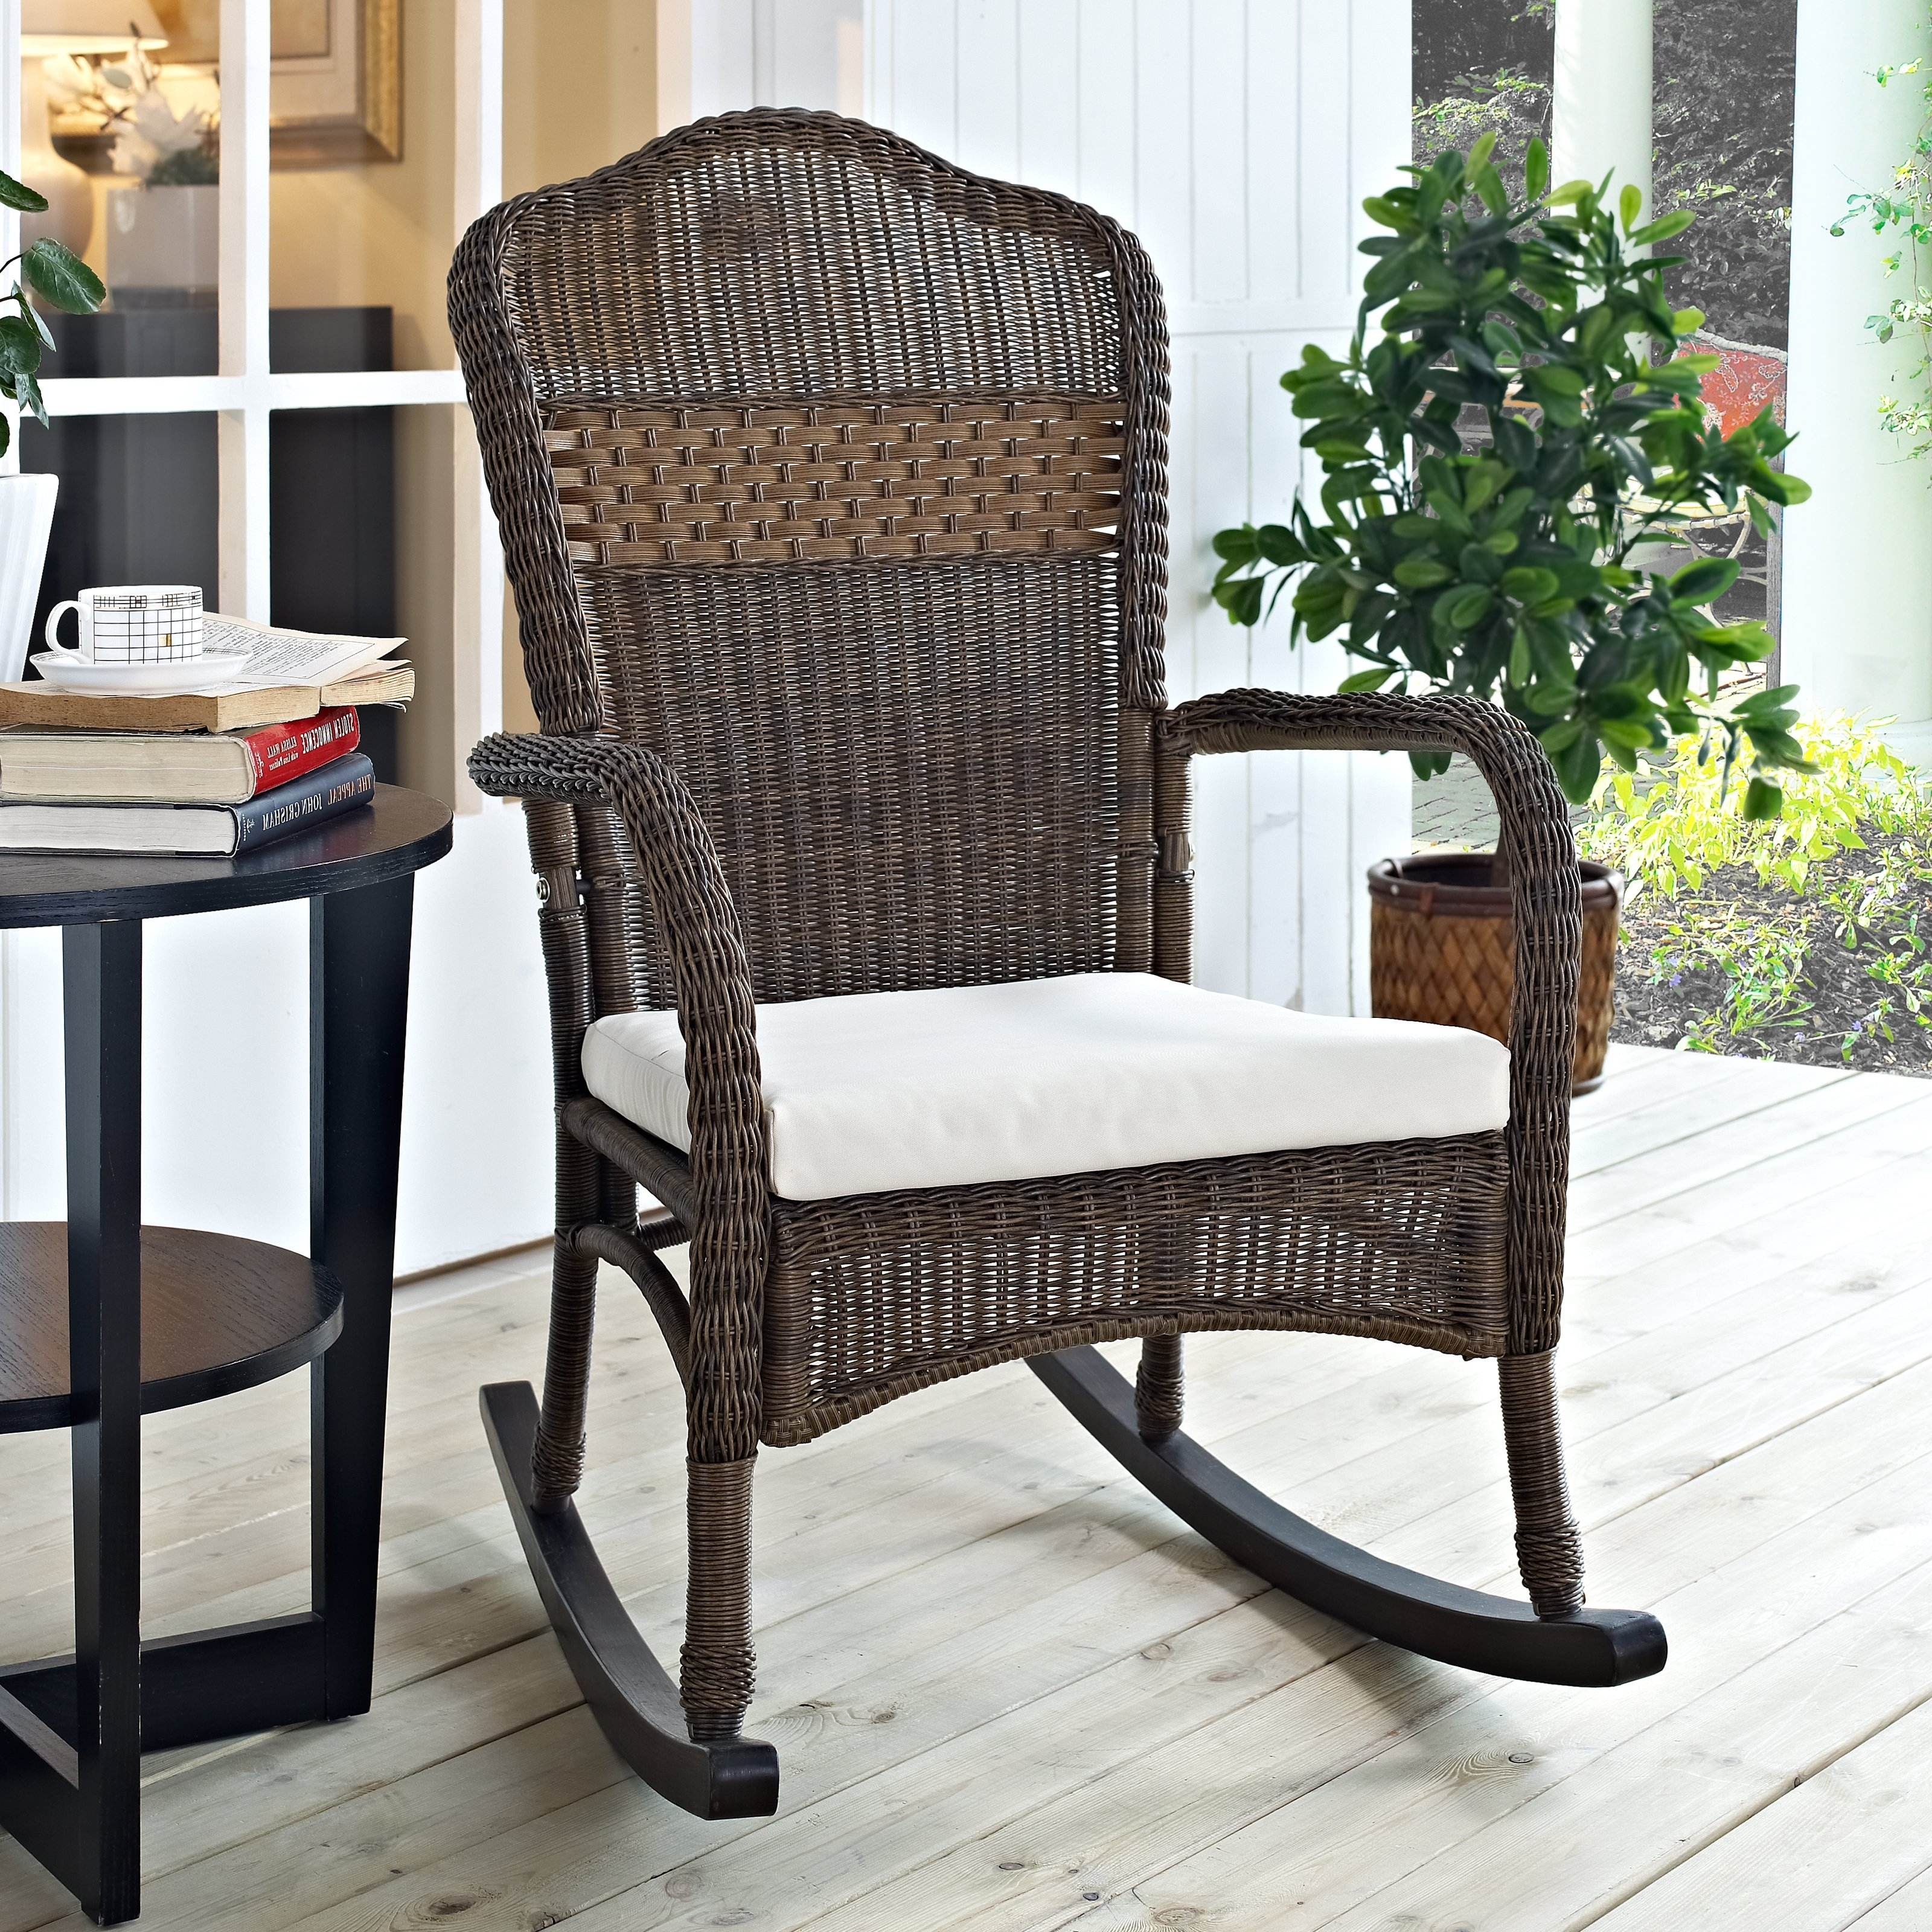 2018 Outdoor Rocking Chairs Inside Coral Coast Mocha Resin Wicker Rocking Chair With Beige Cushion (View 8 of 20)